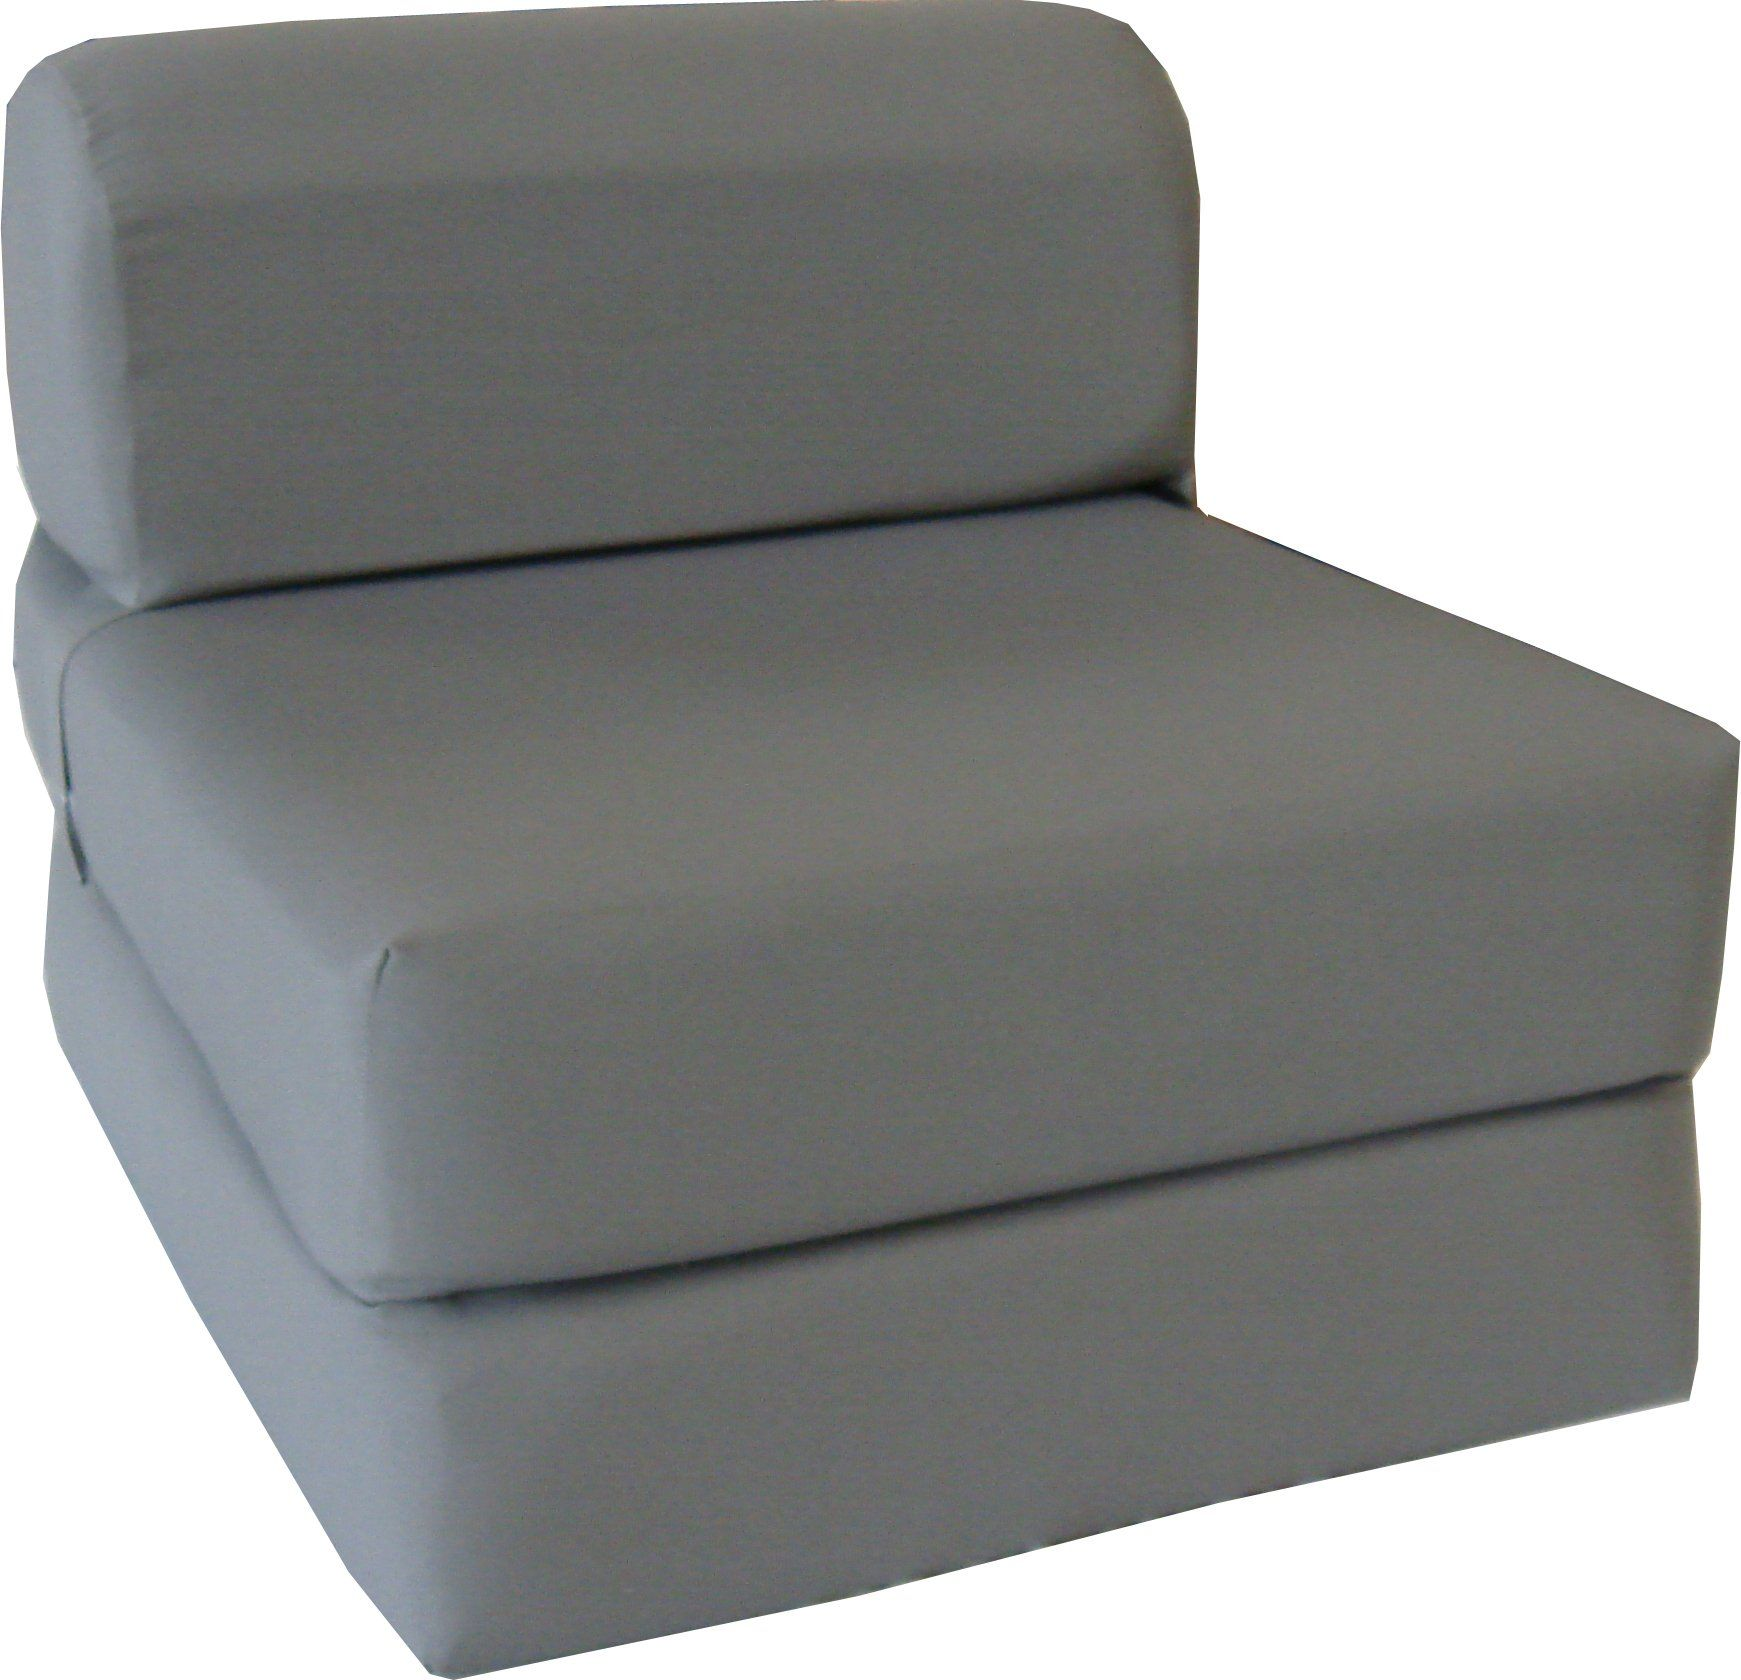 Amazoncom  Gray Sleeper Chair Folding Foam Bed Sized 6